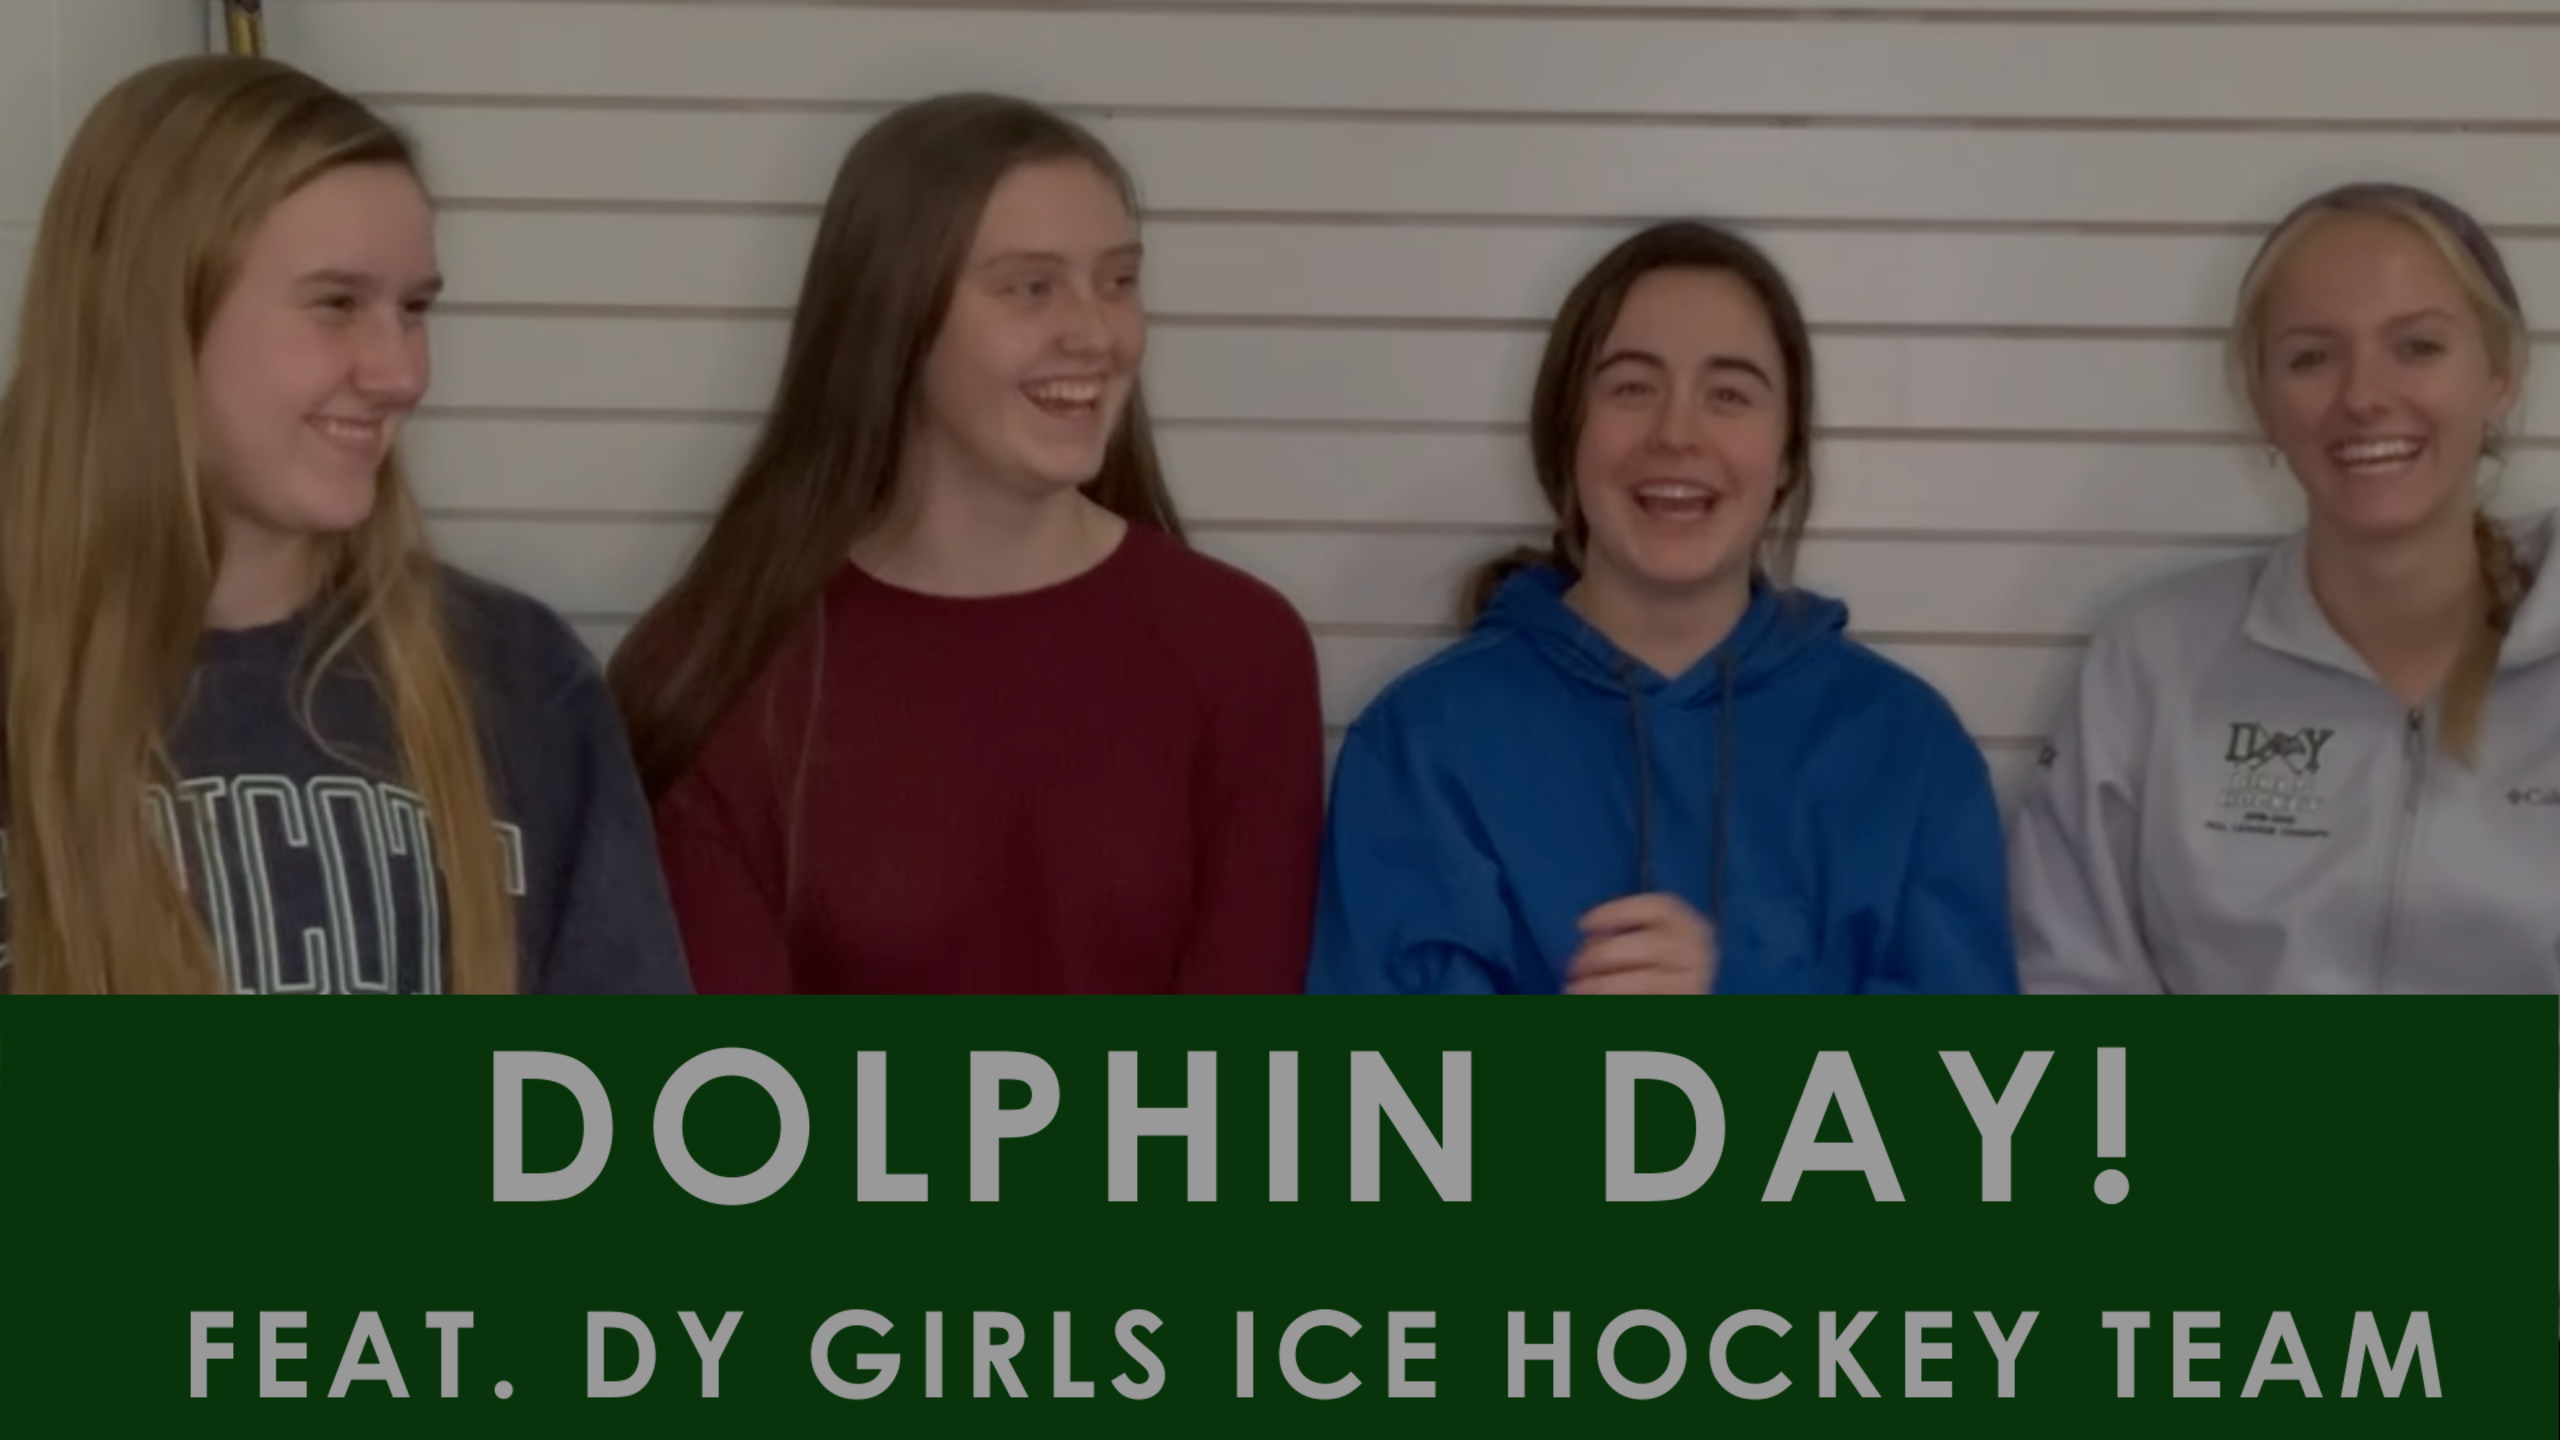 Episode 85: Dolphin Day (feat. Captains of the DY Girls Hockey Team)